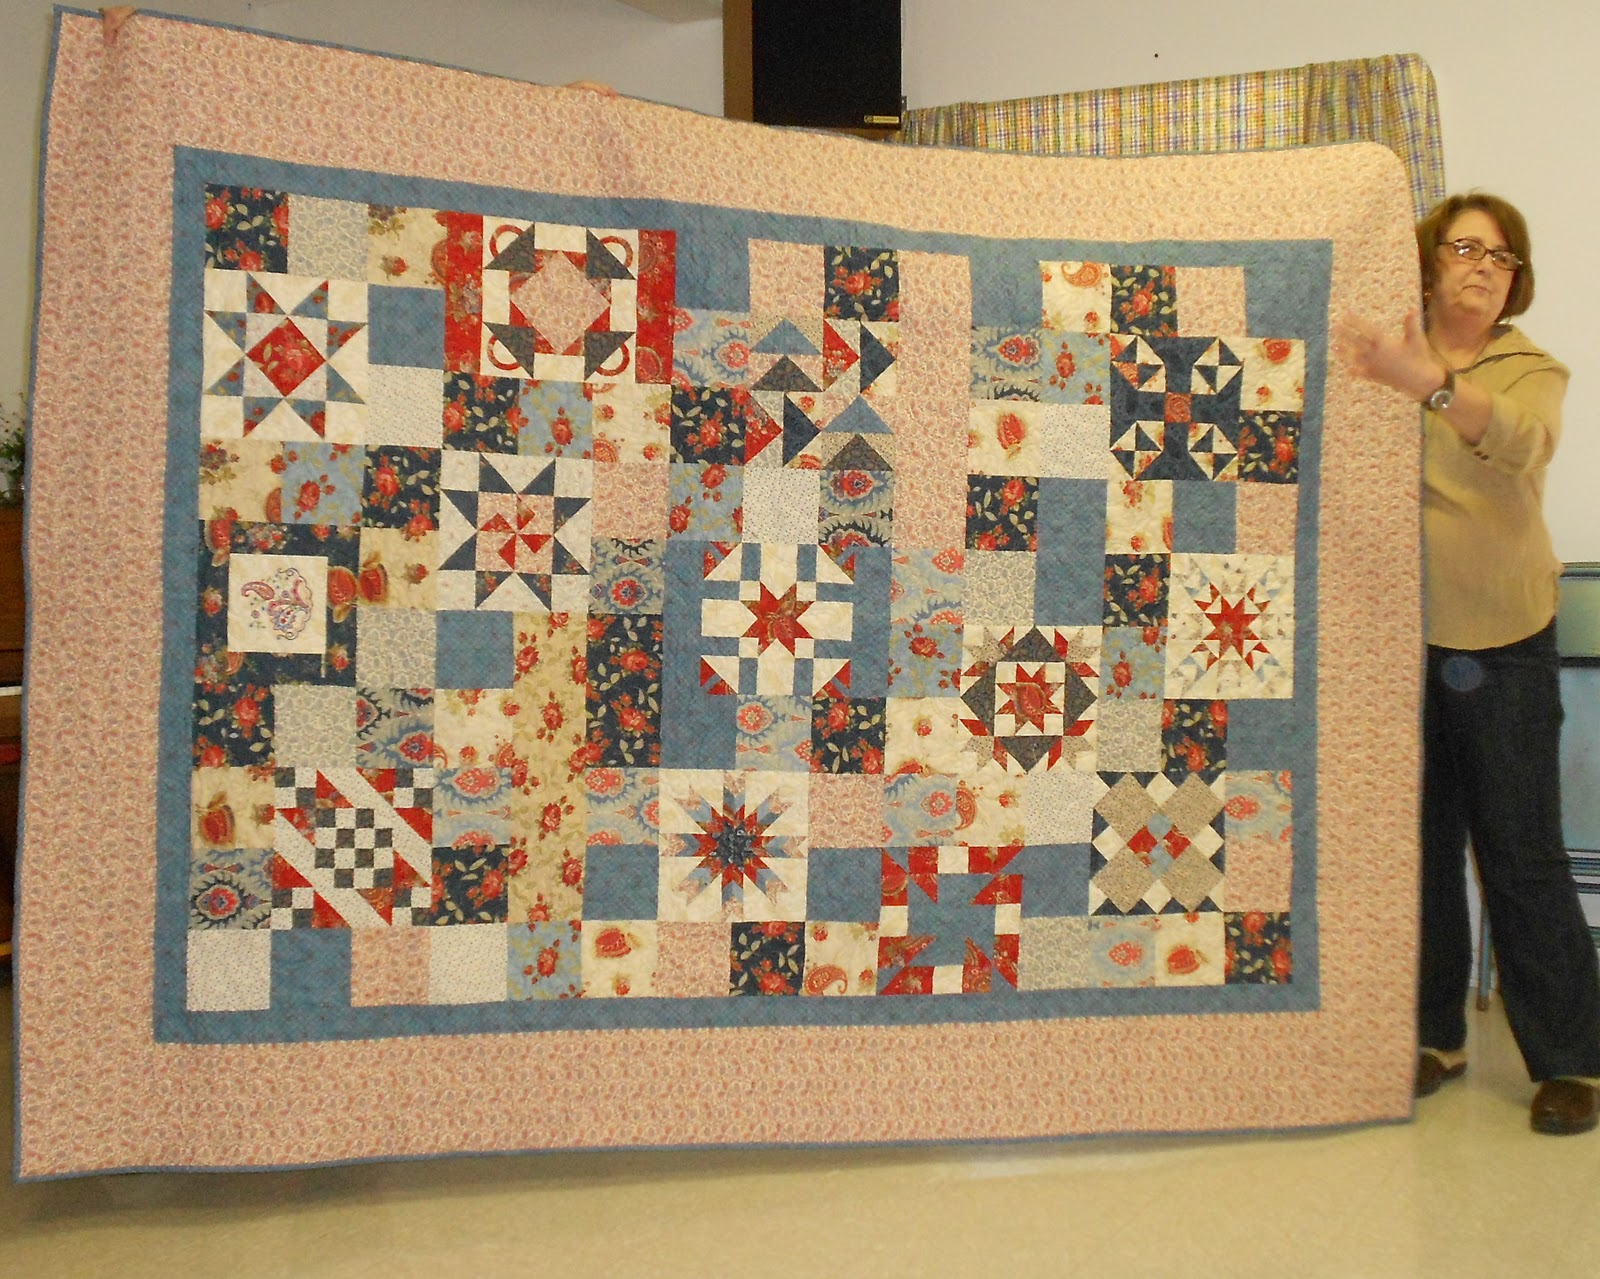 Brownwood Quilters' Guild: January 2012